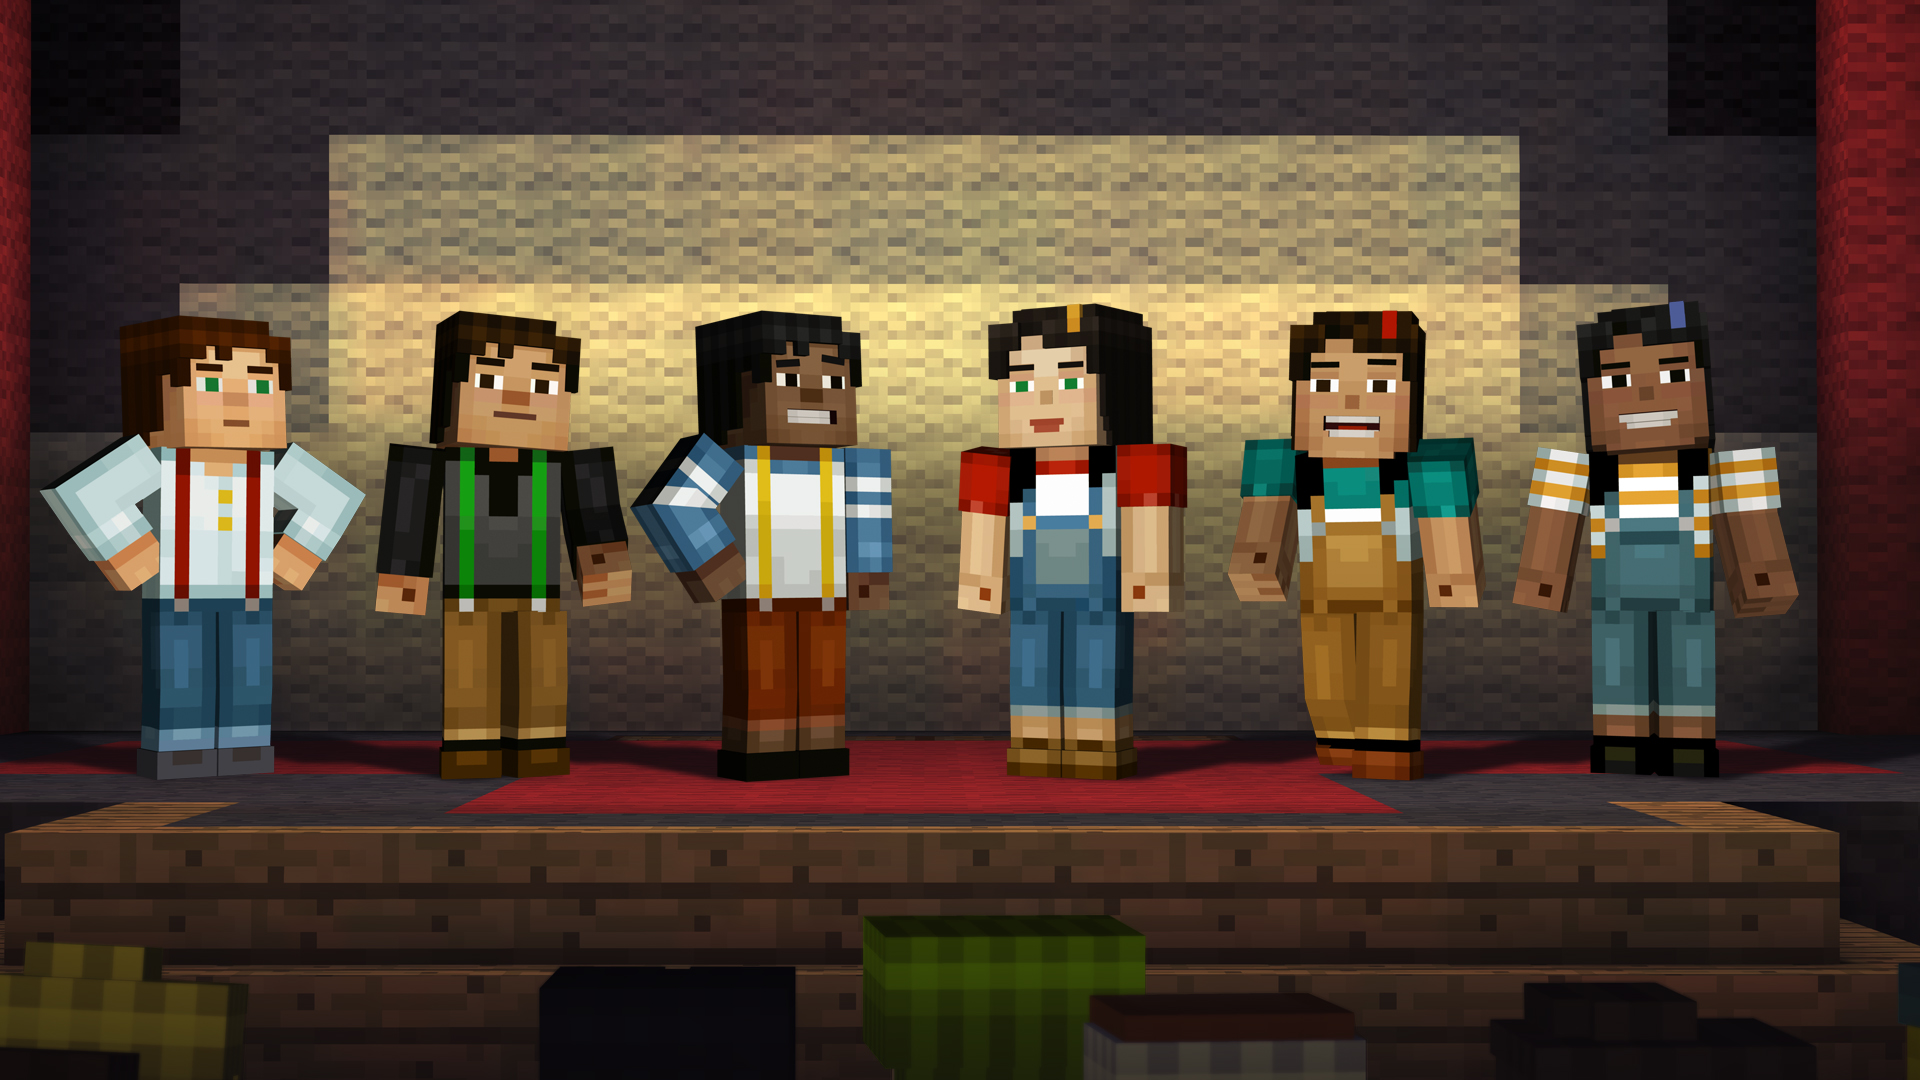 Minecraft Story Mode A Telltale Games Series On Steam - Minecraft spiele anschauen